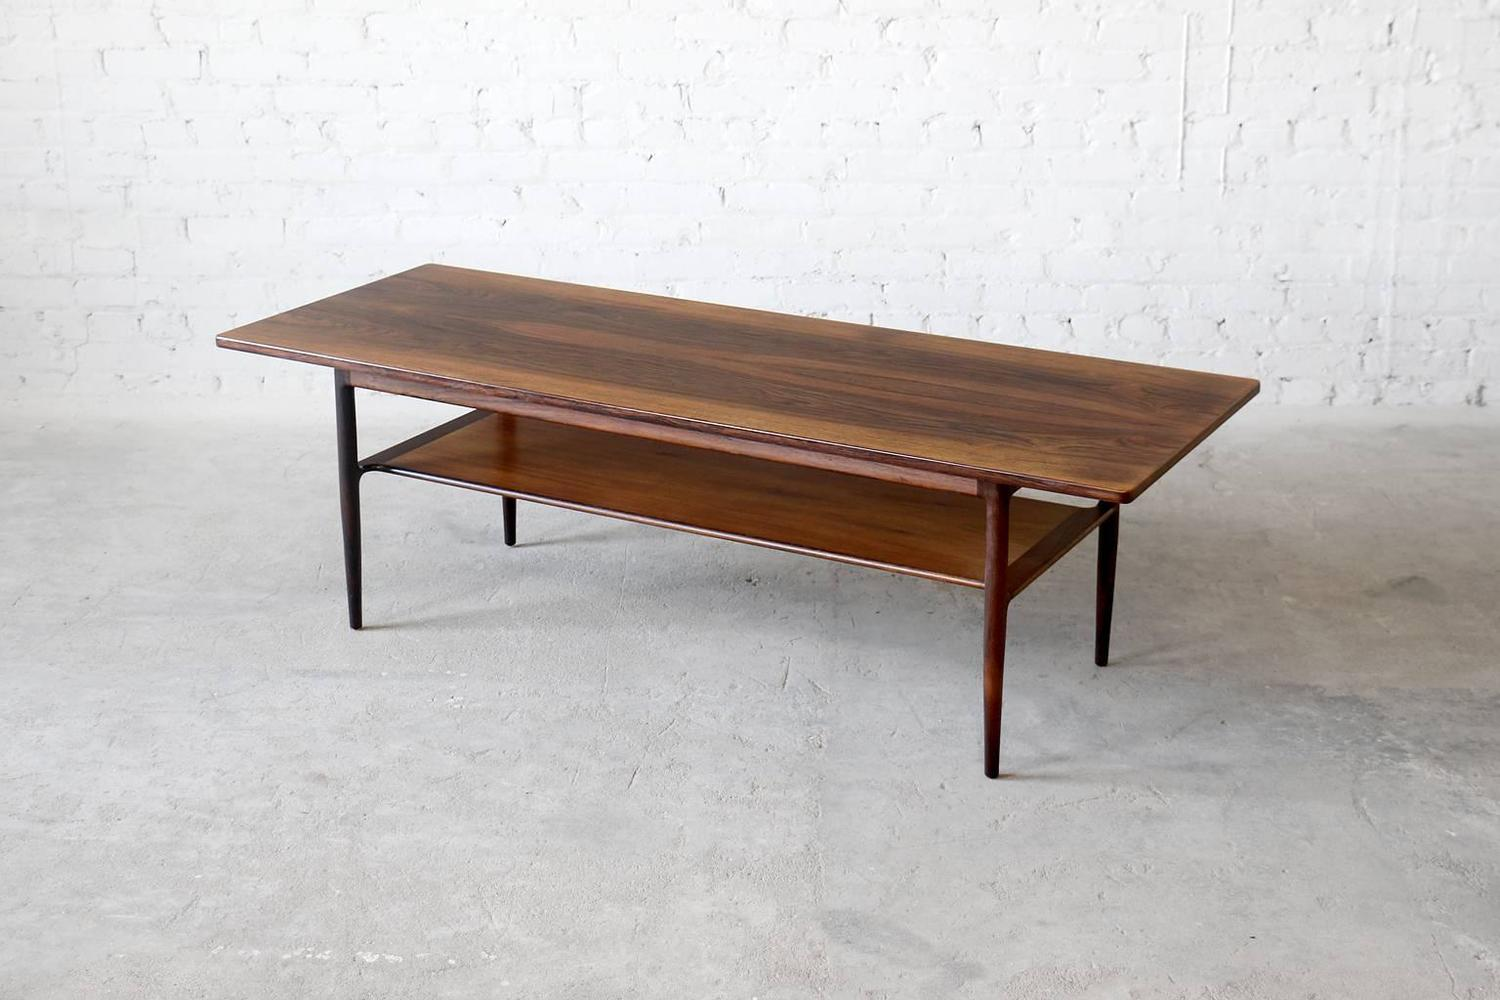 Ib kofod larsen brazilian rosewood coffee table by for Coffee tables port elizabeth